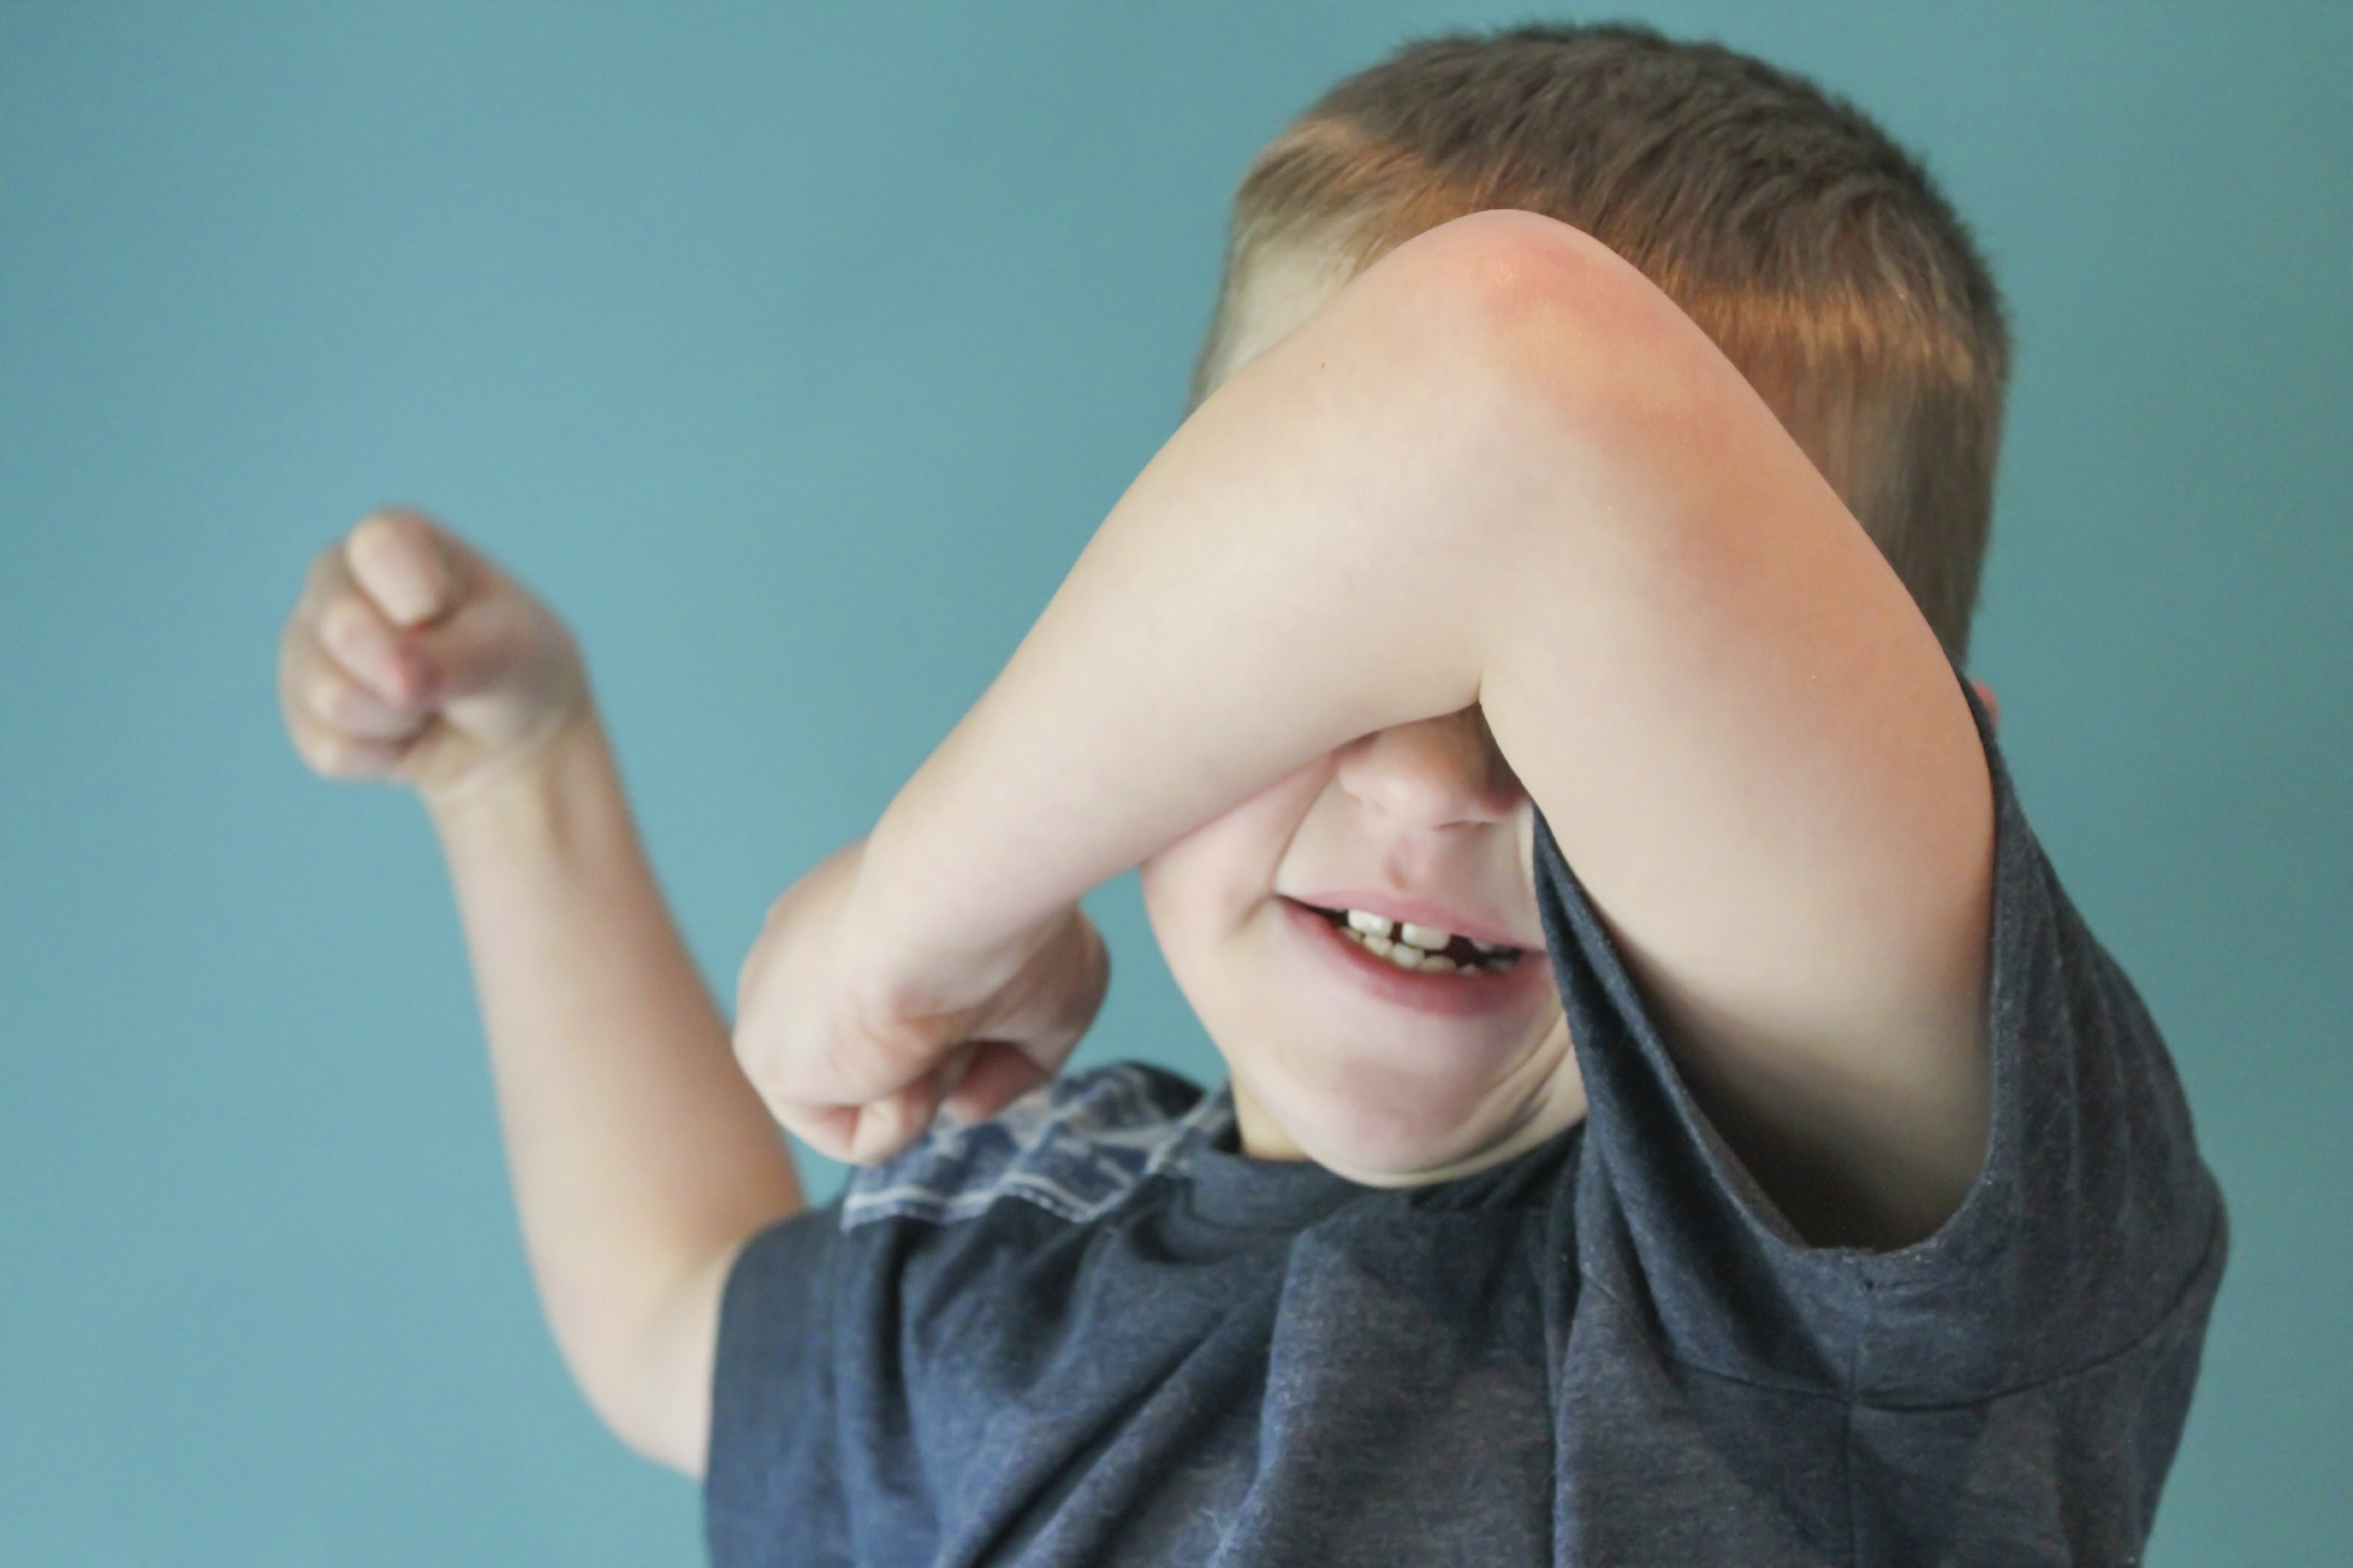 Adhd Diagnoses Why Youngest Kids In >> More Kids Getting Diagnosed With Adhd At Young Ages Cbs News